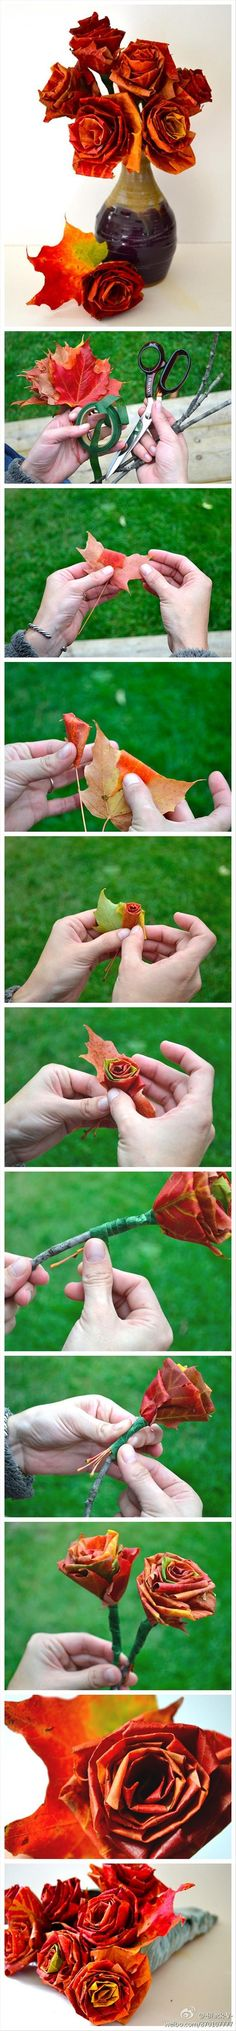 how to make fake flowers fun craft ideas with leaves